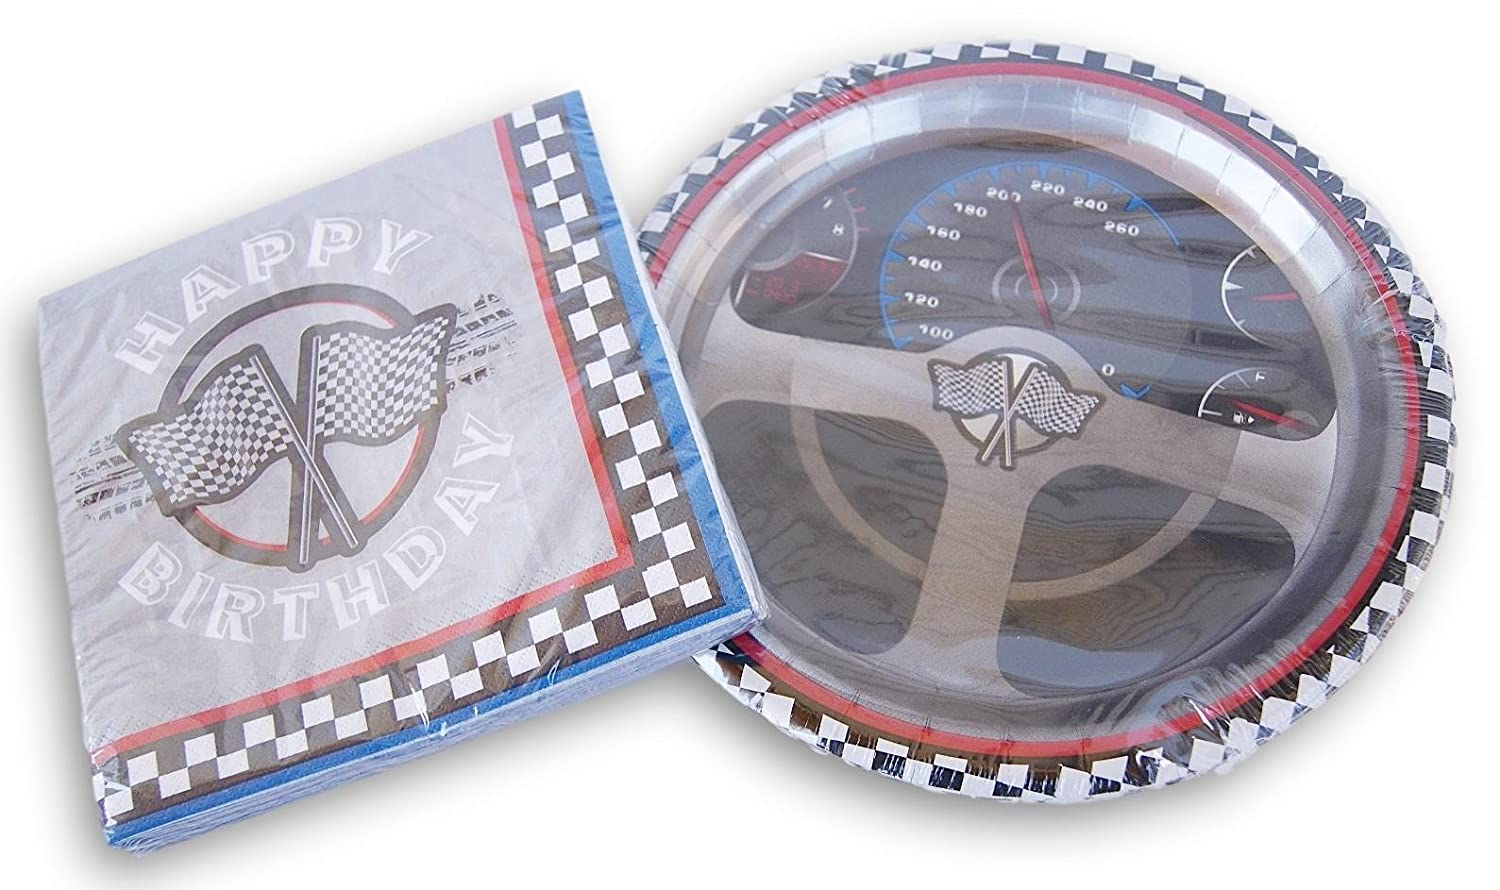 Racecar Birthday Party Patterned Supply Kit Dinner Plates and Napkins Paper Art